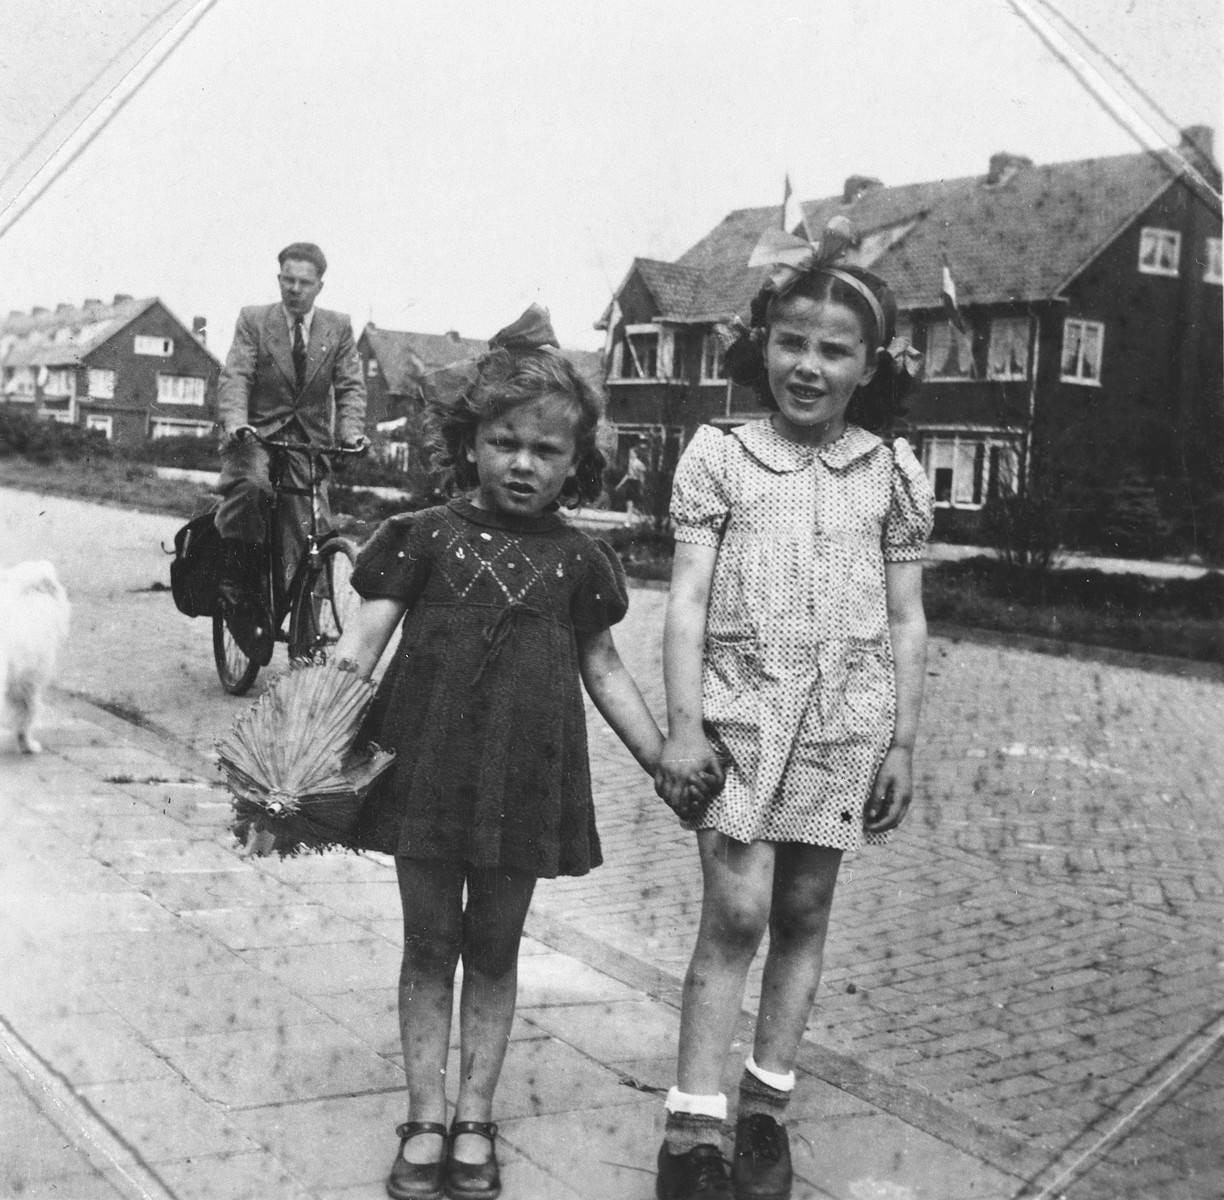 Two young girls, one of whom is a Jewish child in hiding, pose on a street of an unidentified Dutch town in front of a man on a bicycle.  Pictured is Rita Serphos.